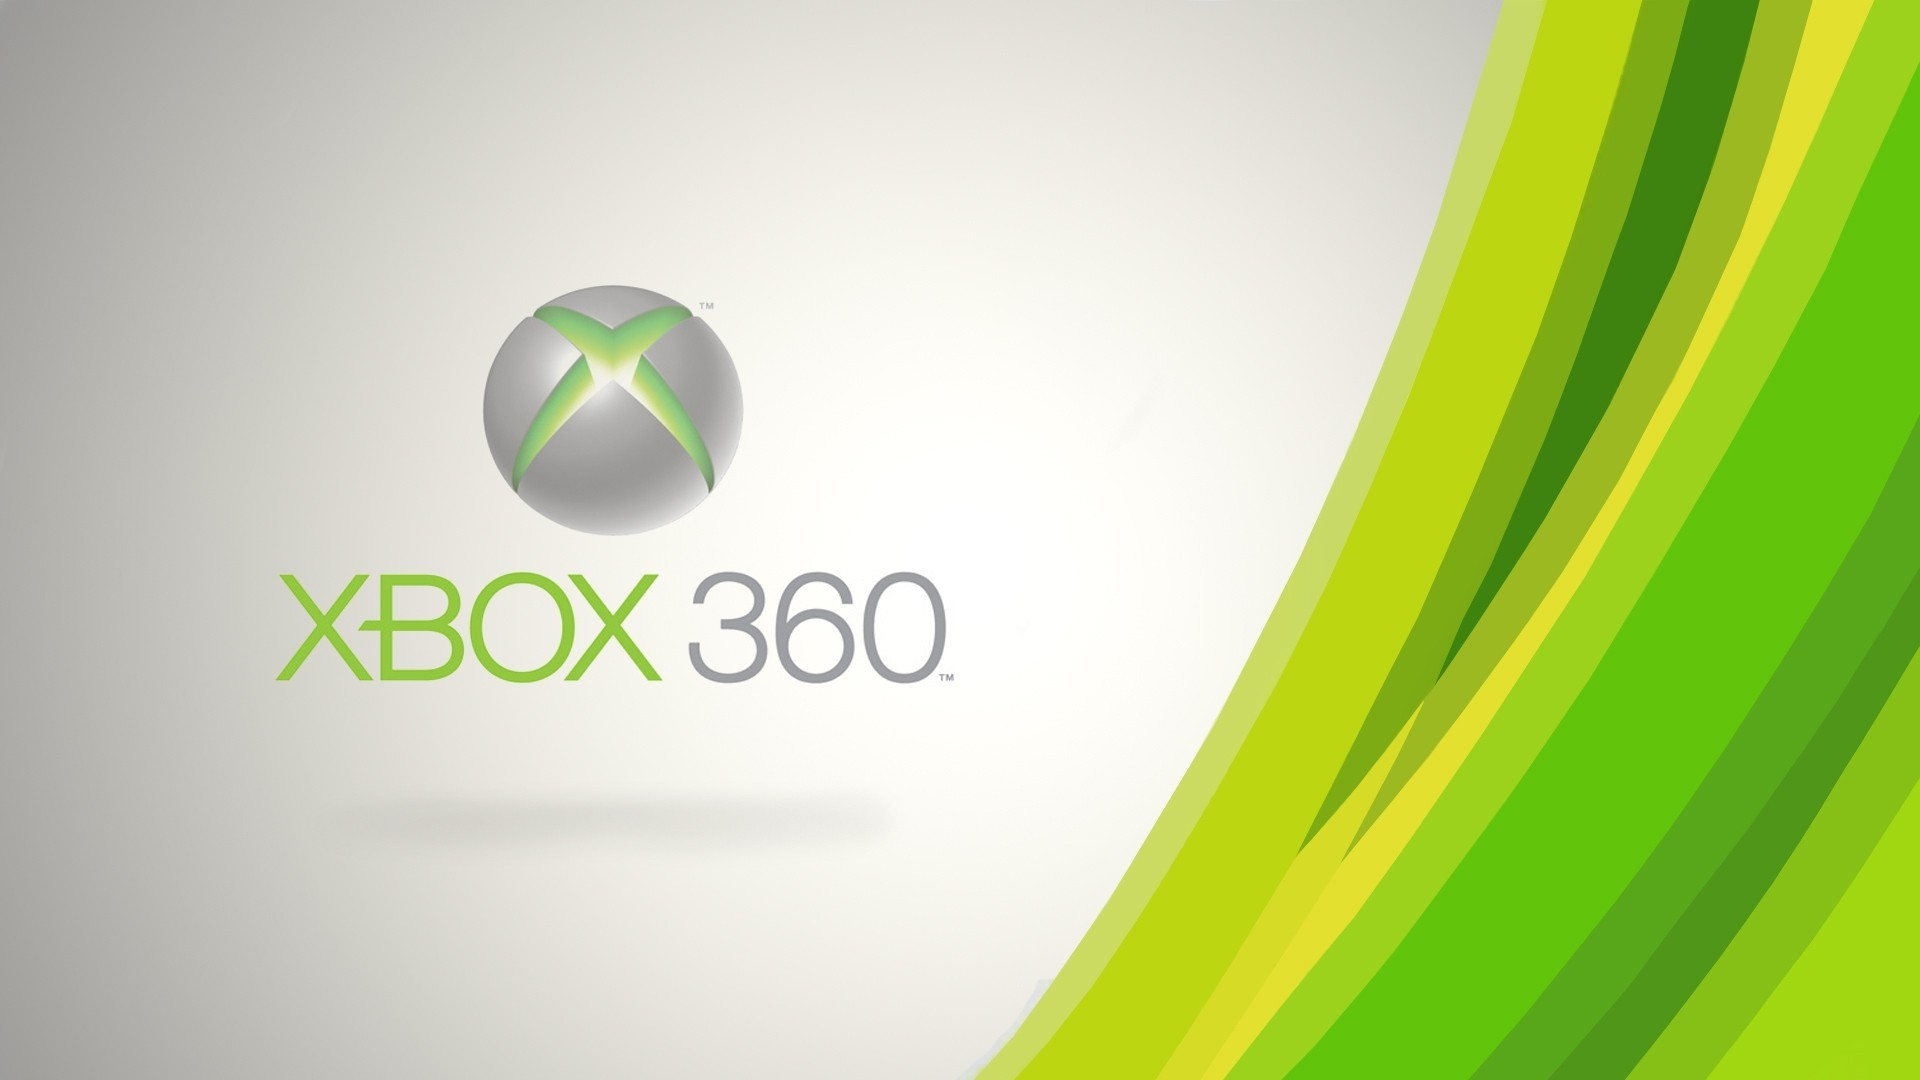 Xbox 360 Wallpaper Hd 64 Images